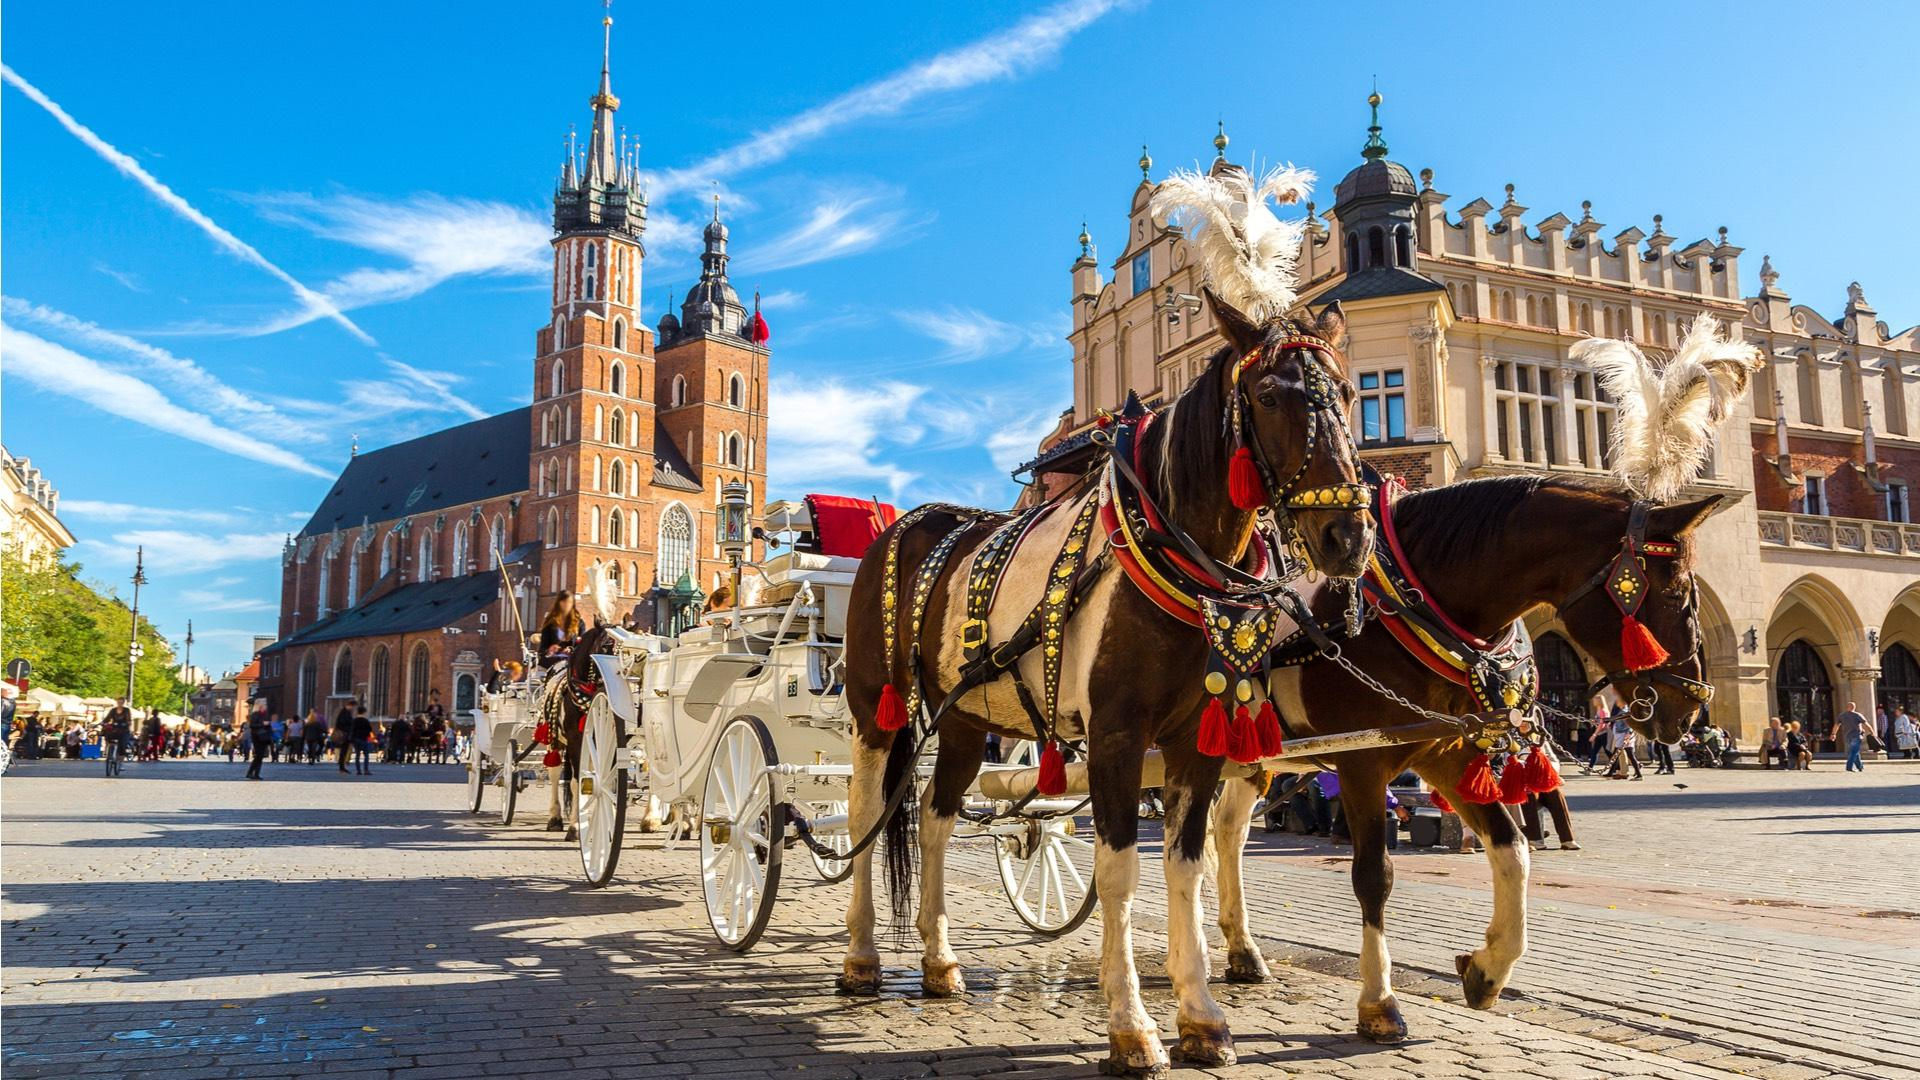 A carriage ride around the Old Town is a romantic way to tour the city, particularly in the evening, when the whole Square, and especially St. Mary's Basilica and the Cloth Hall are splendidly illuminated. – © S-F / Shutterstock